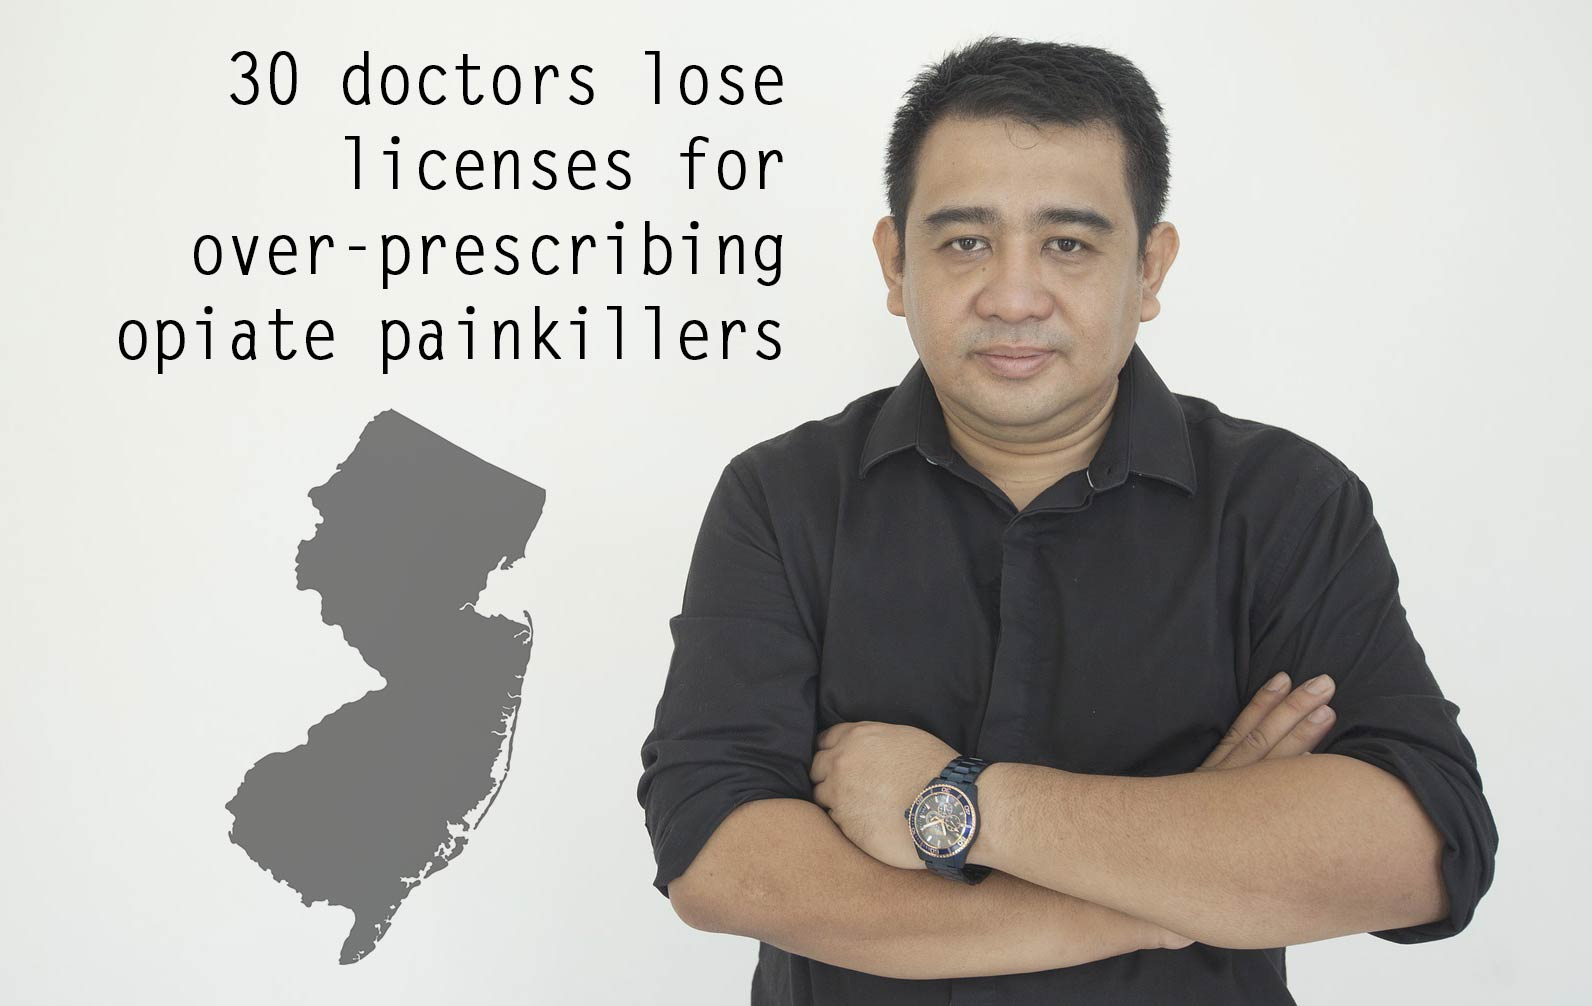 new jersey pain doctors lose license